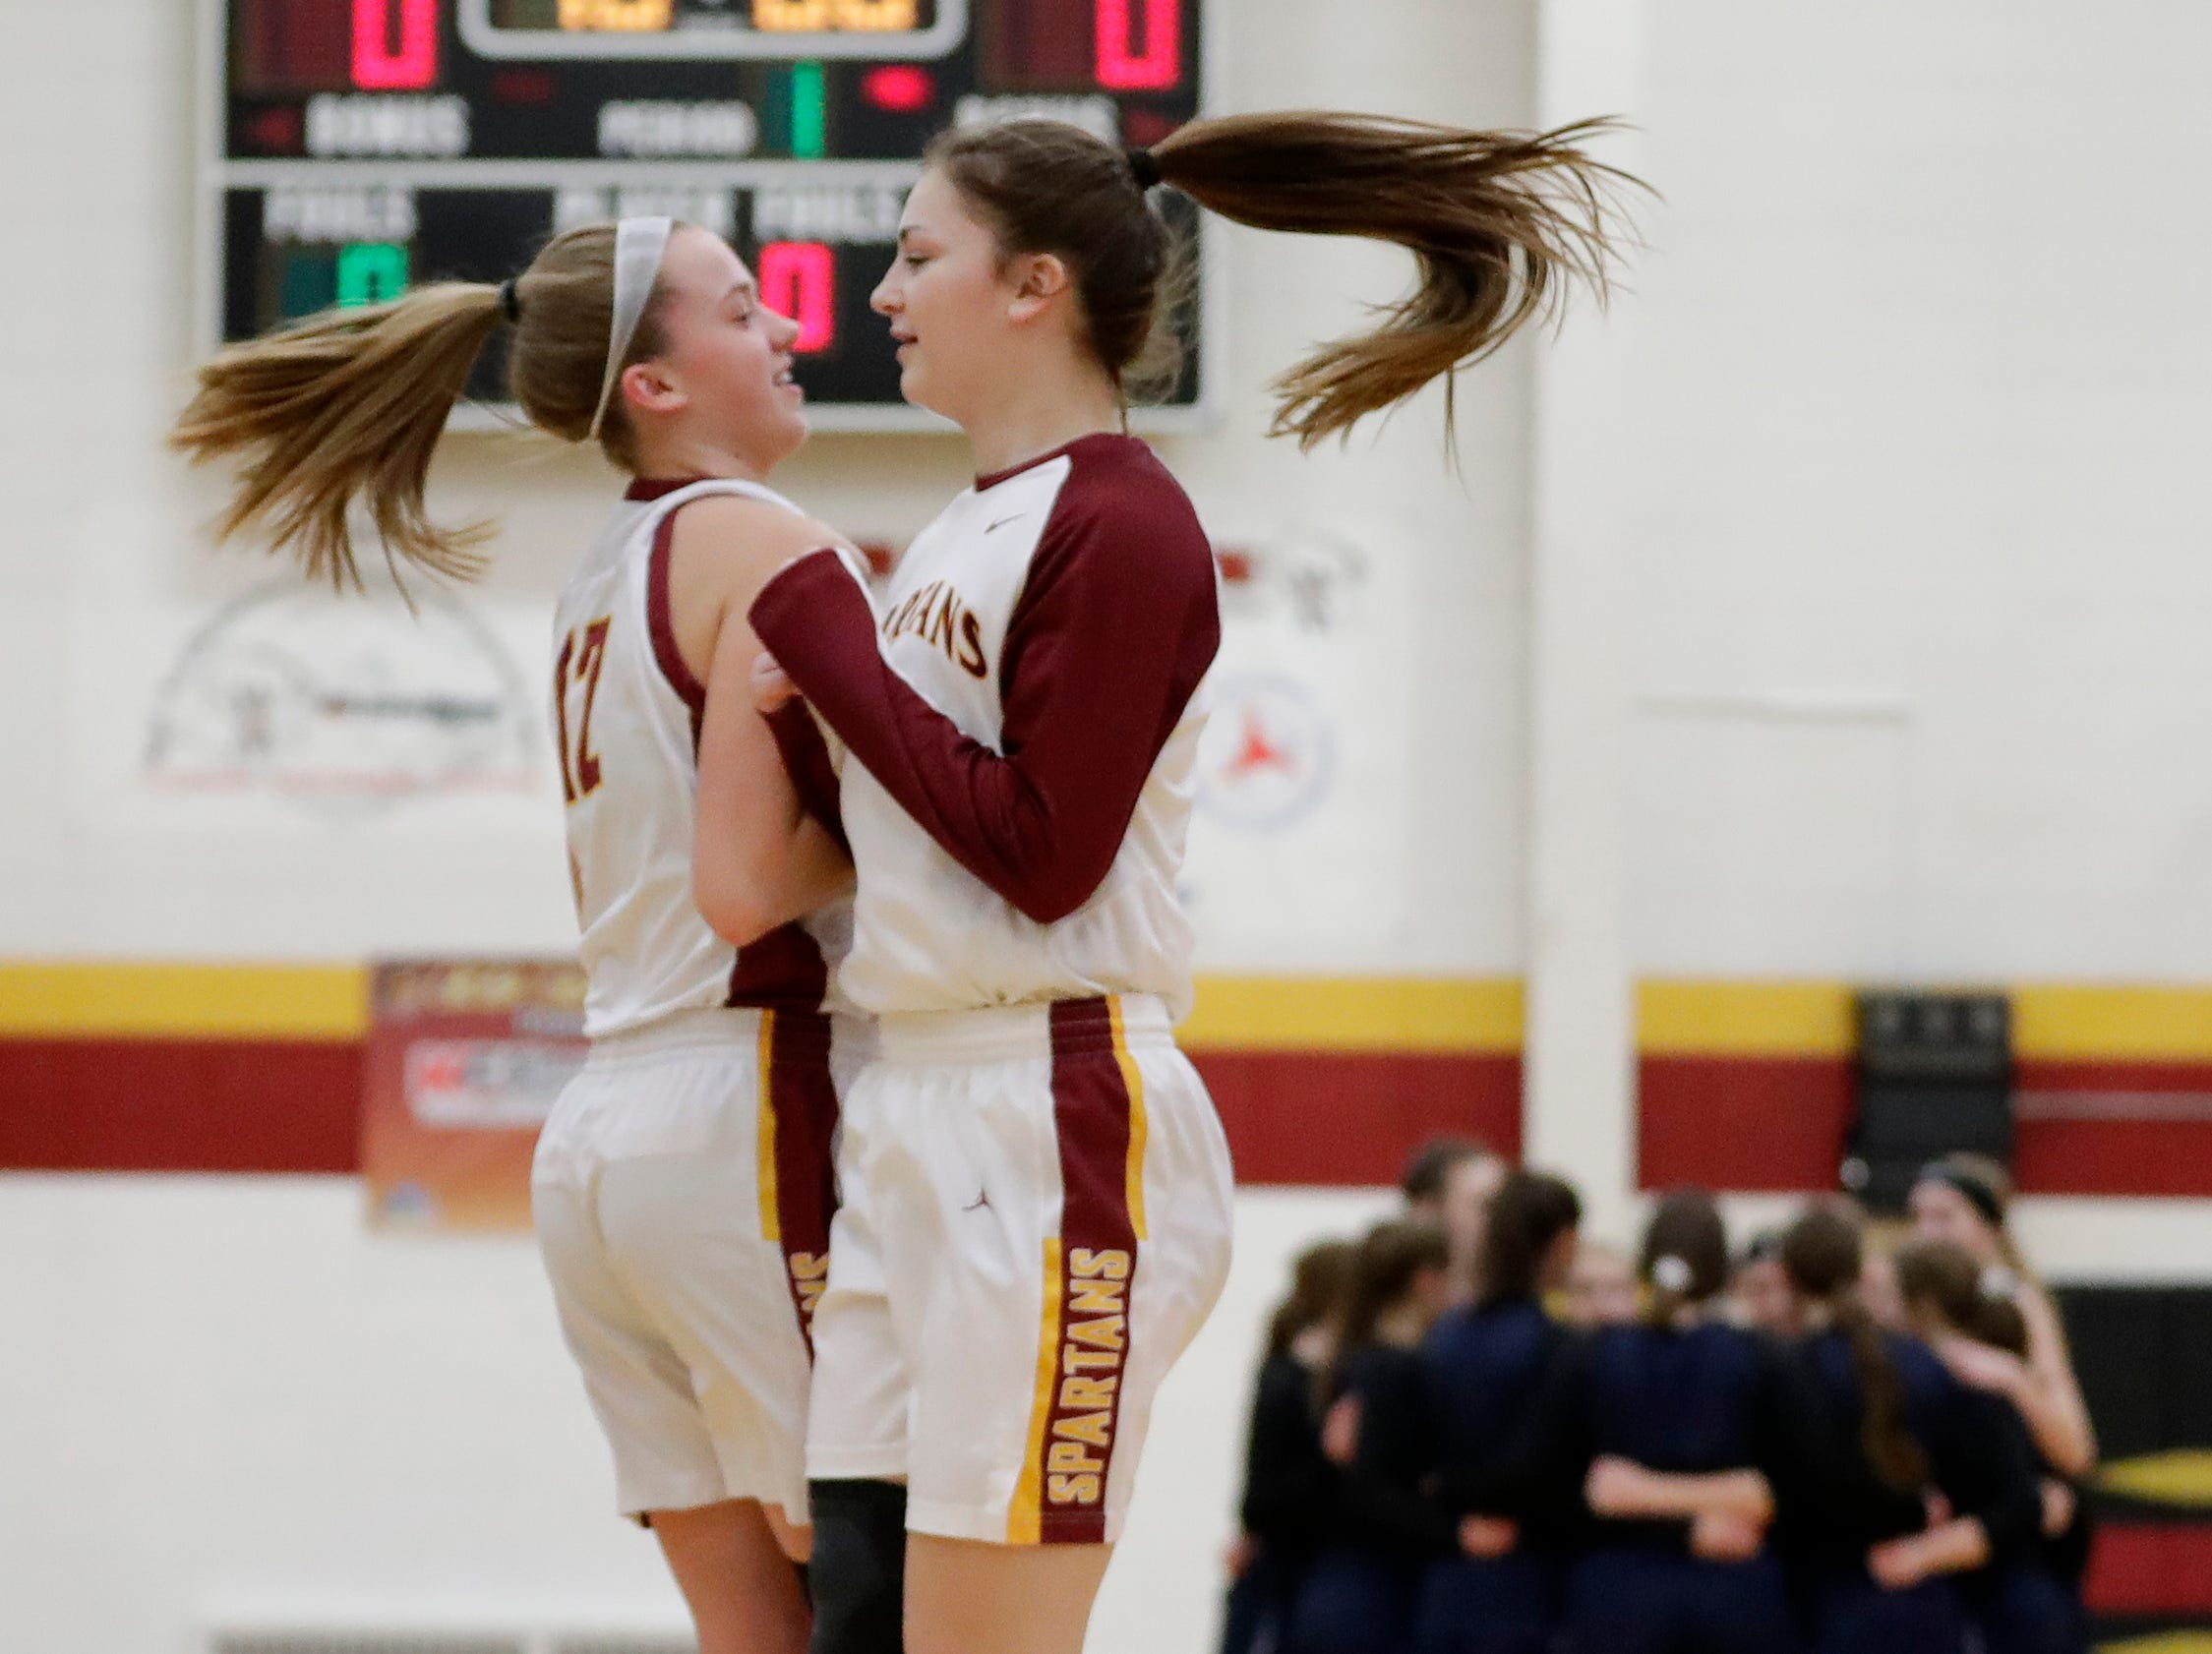 Luxemburg-Casco's Jordan Bukouricz (12) takes the floor to face Waupaca in a girls basketball game at Luxemburg-Casco high school on Thursday, January 10, 2019 in Luxemburg, Wis.